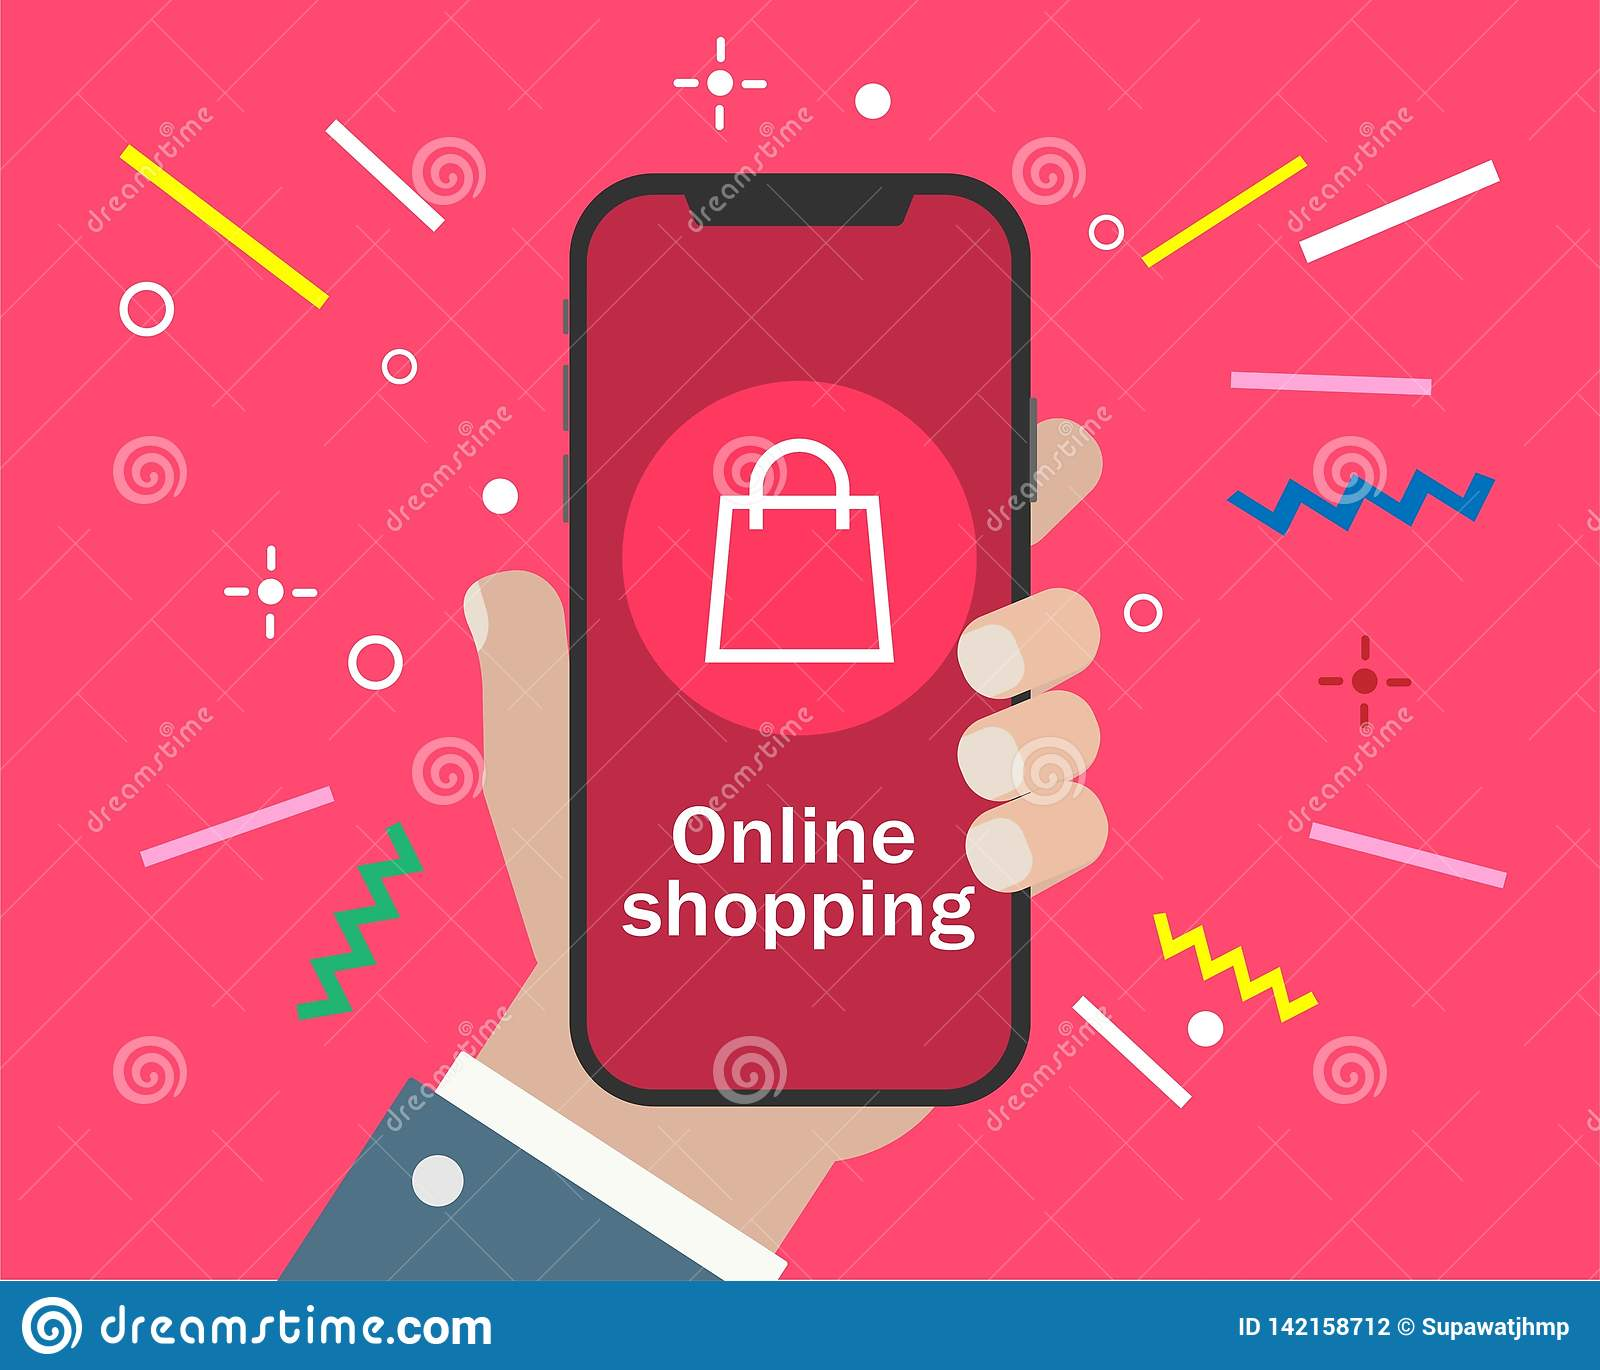 Hand holding smartphone and online shopping